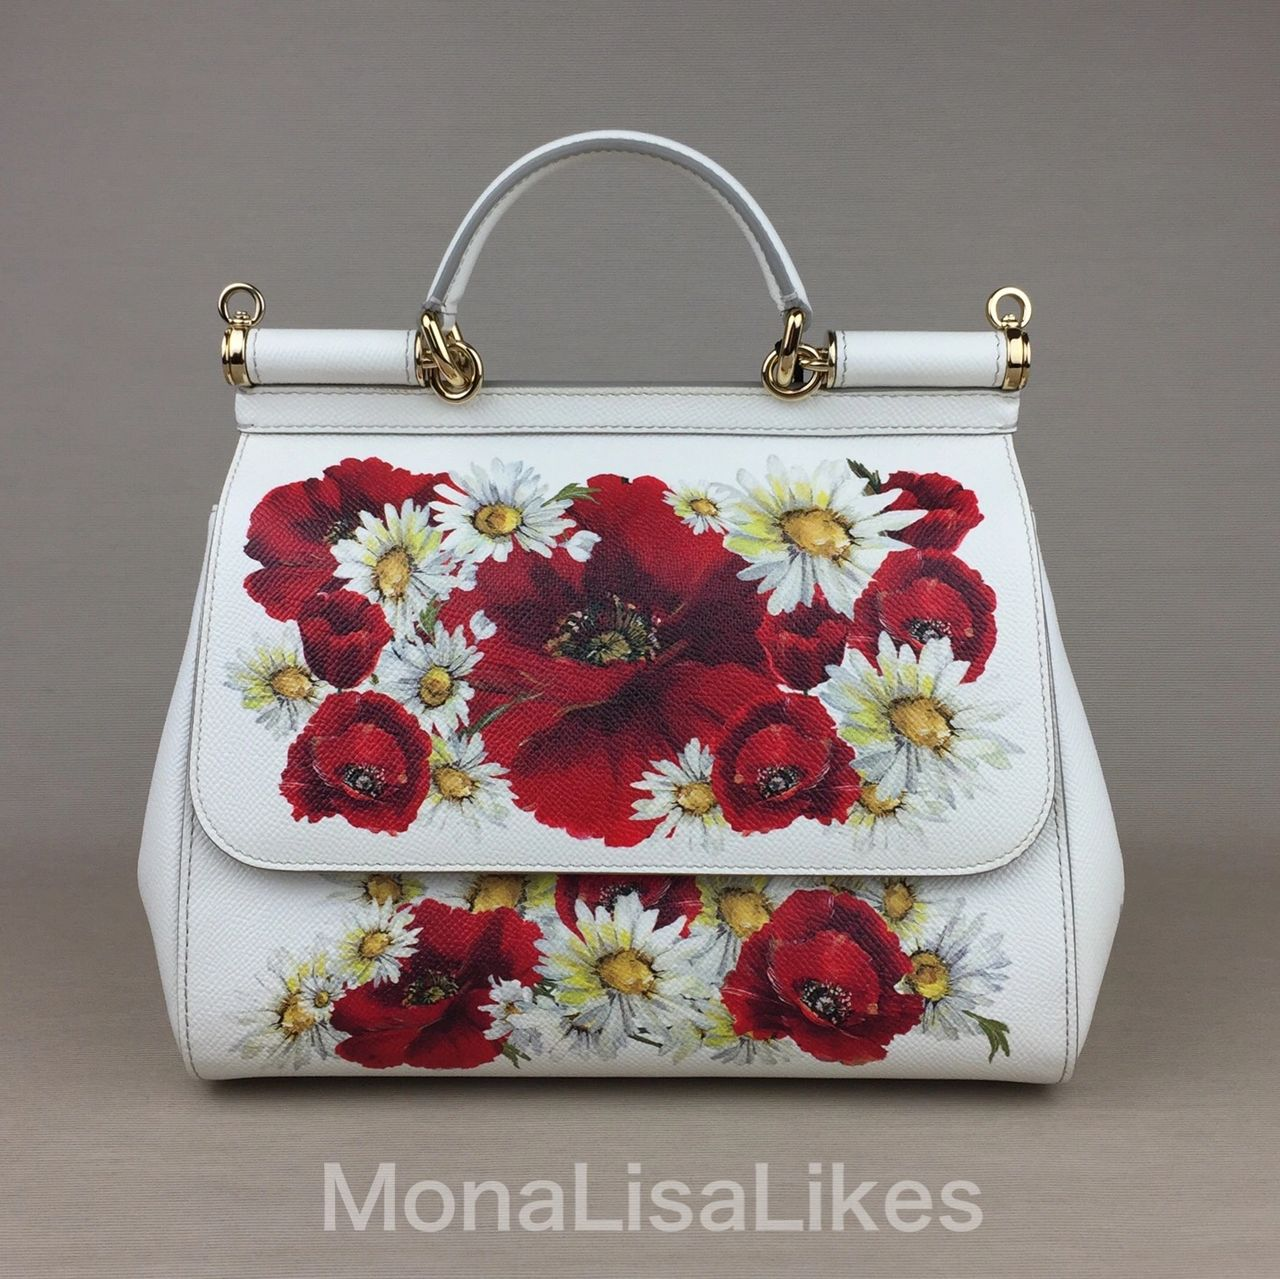 DOLCE & GABBANA Miss Sicily purse in poppy print